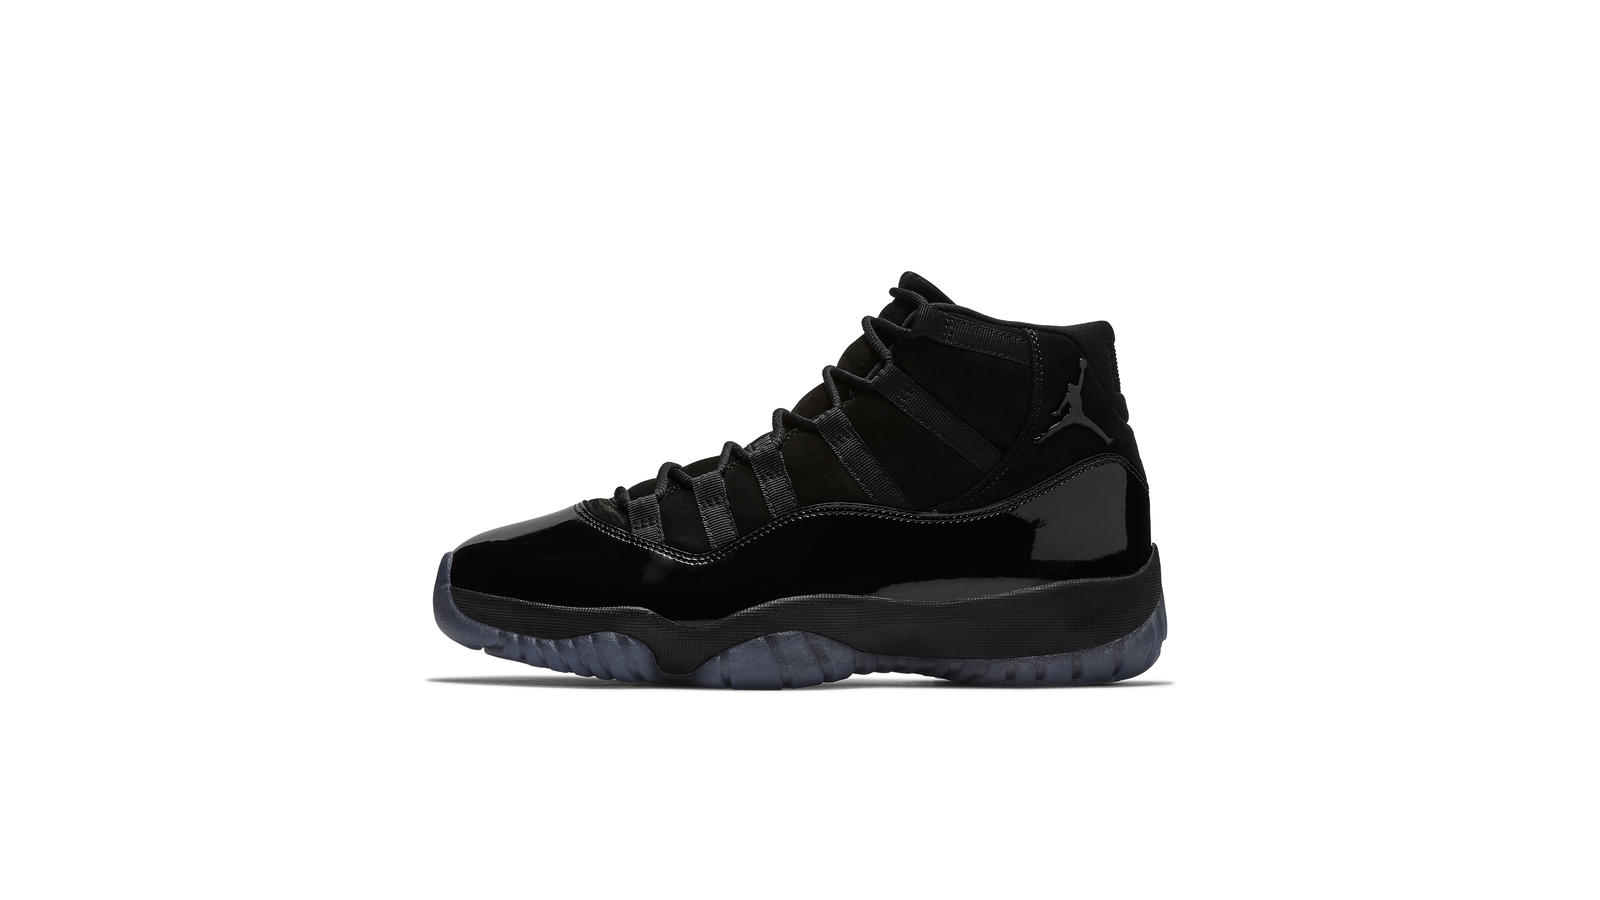 7b5505e81da5 Air Jordan XI Cap and Gown - Nike News